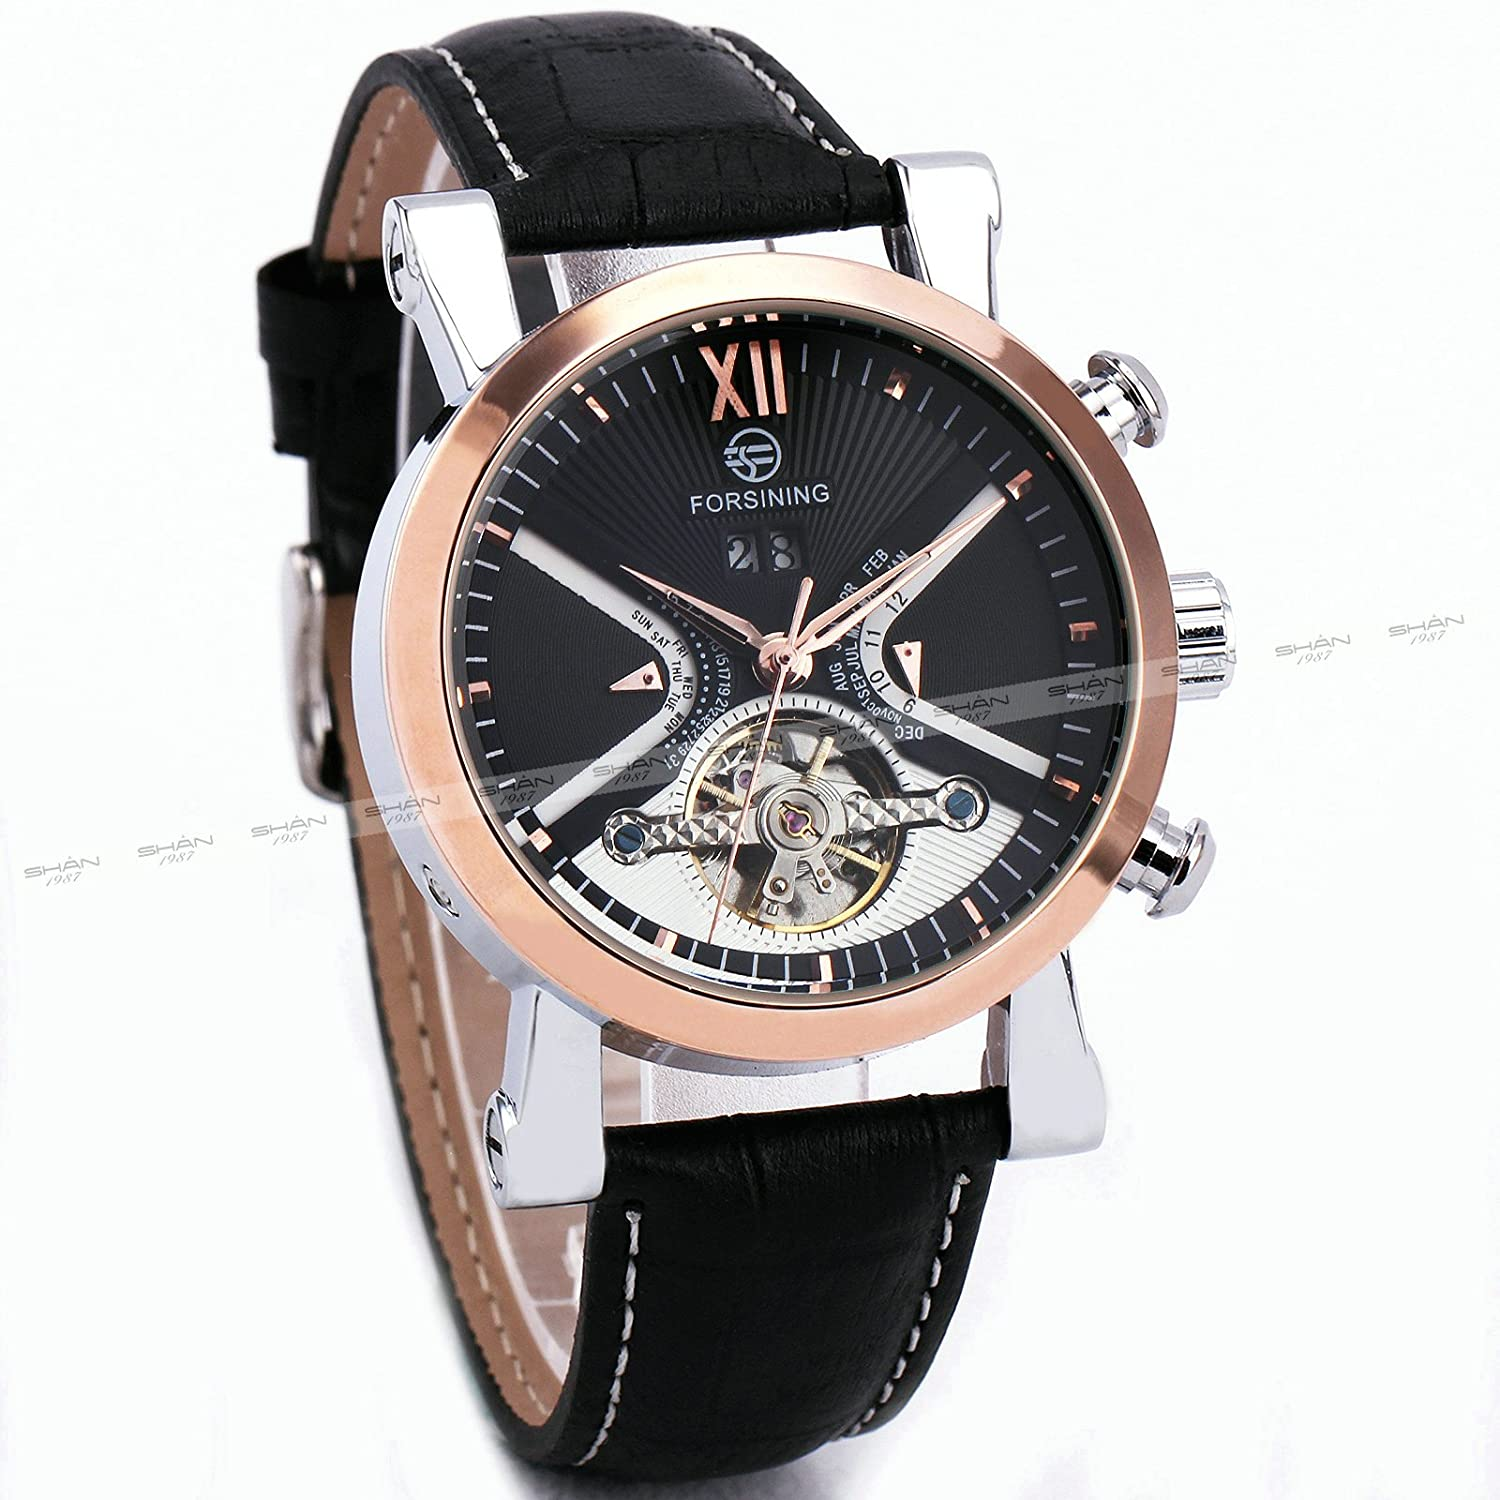 Amazon.com: FORSINING Luxury Business Tourbillon Mechanical Watch Leather Strap Automatic Rose Gold Skeleton Case + BOX: Watches